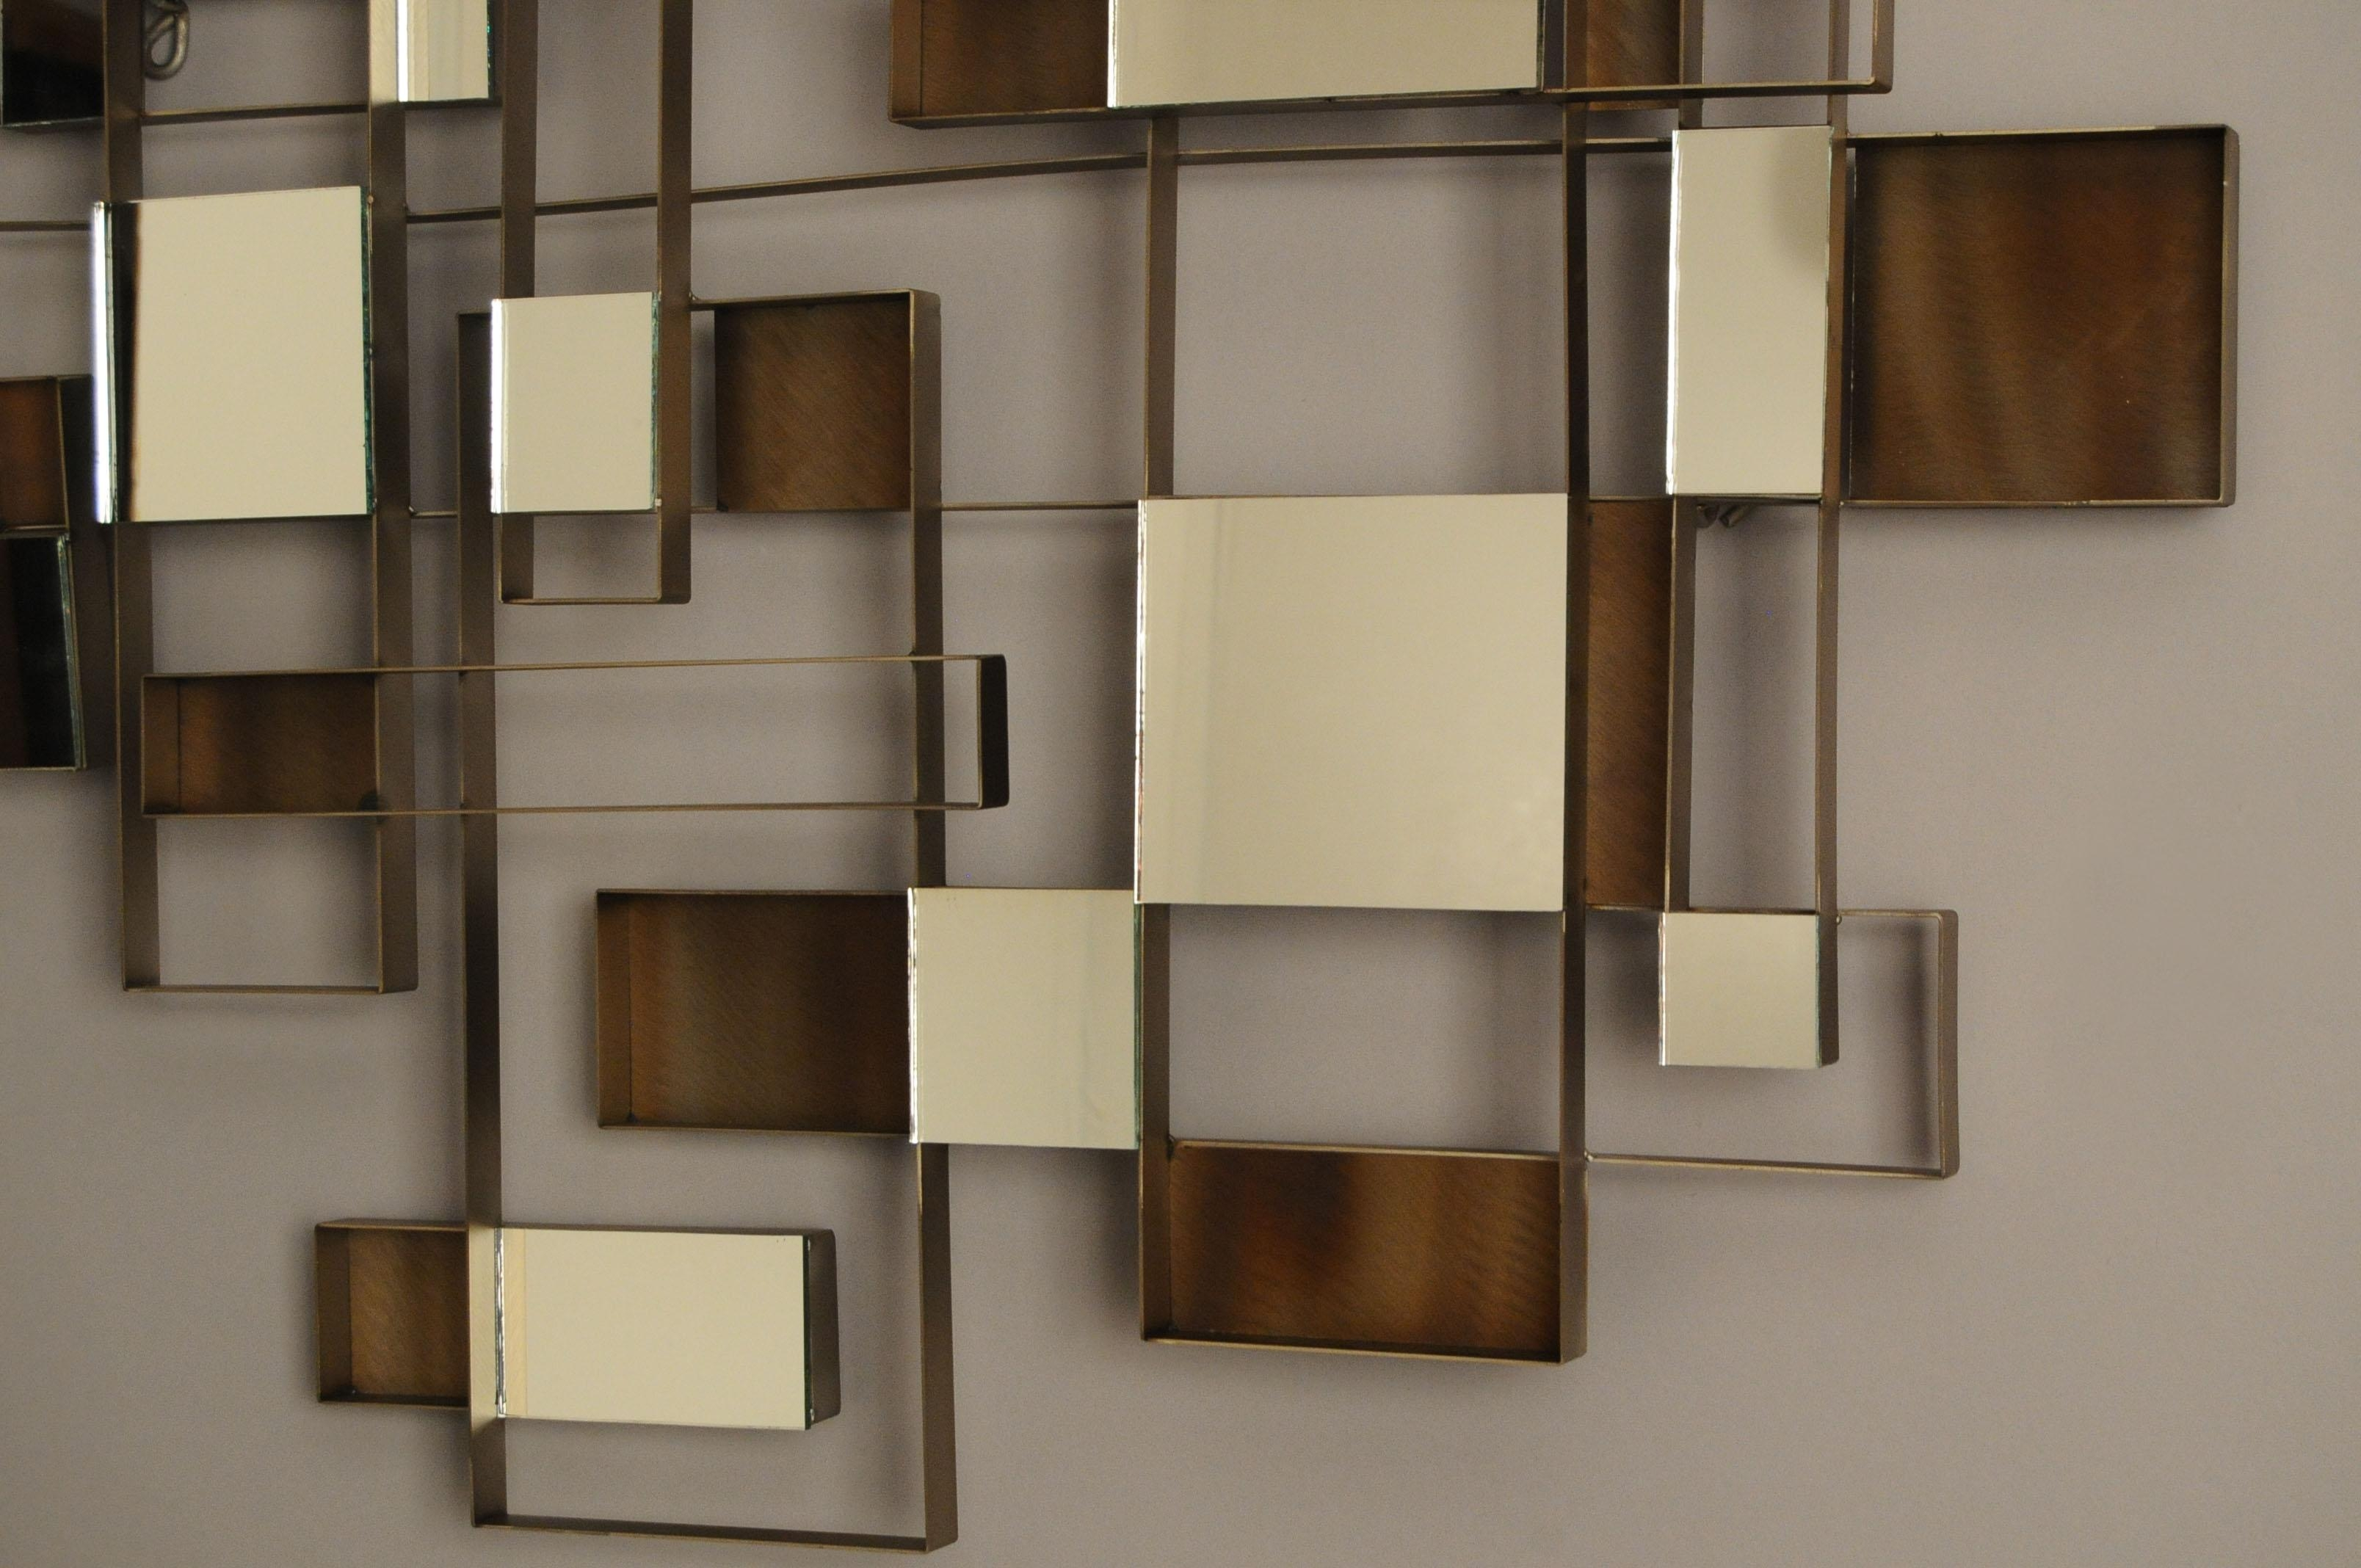 Wall Art Designs: Awesome Wall Art Mirror With Abstract Pattern With Contemporary Mirror Wall Art (View 13 of 20)